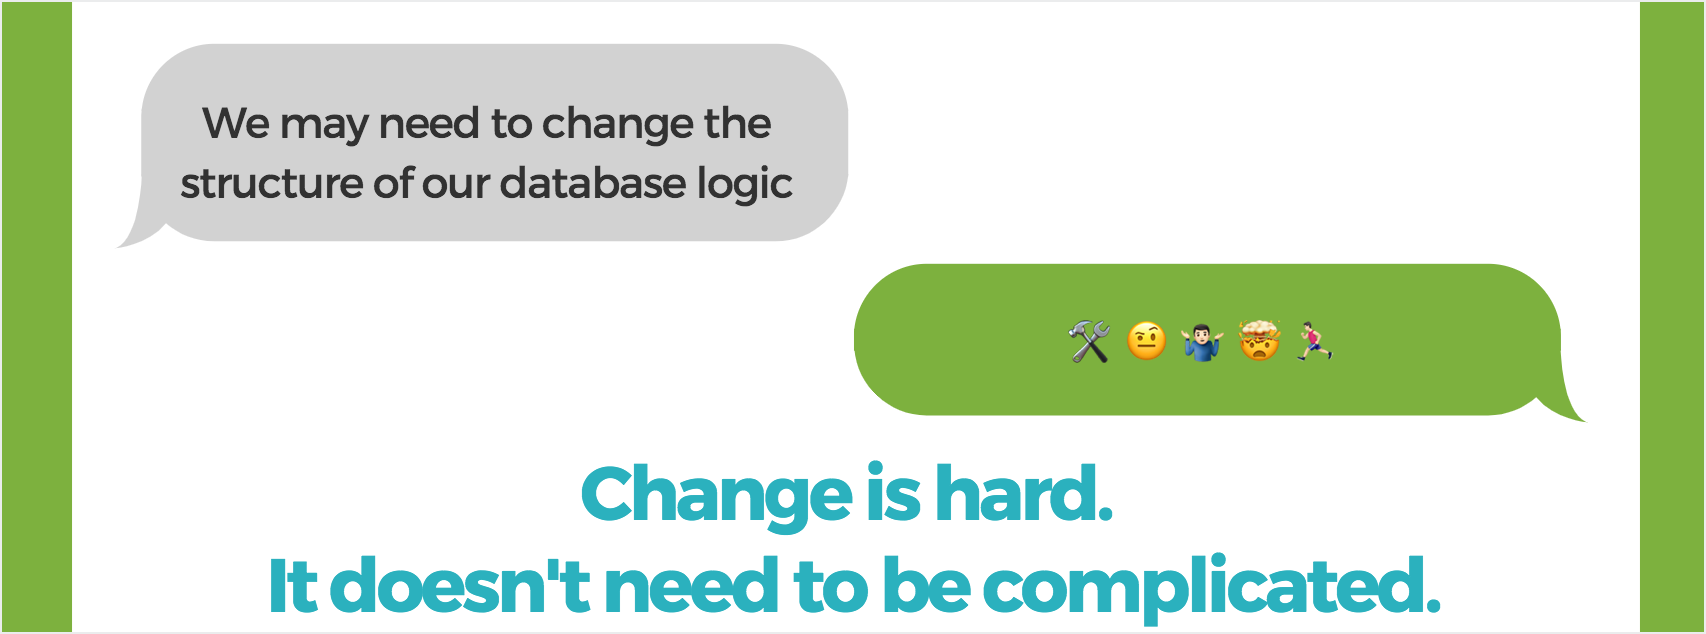 easy-database-change-dba-tasks-1.png